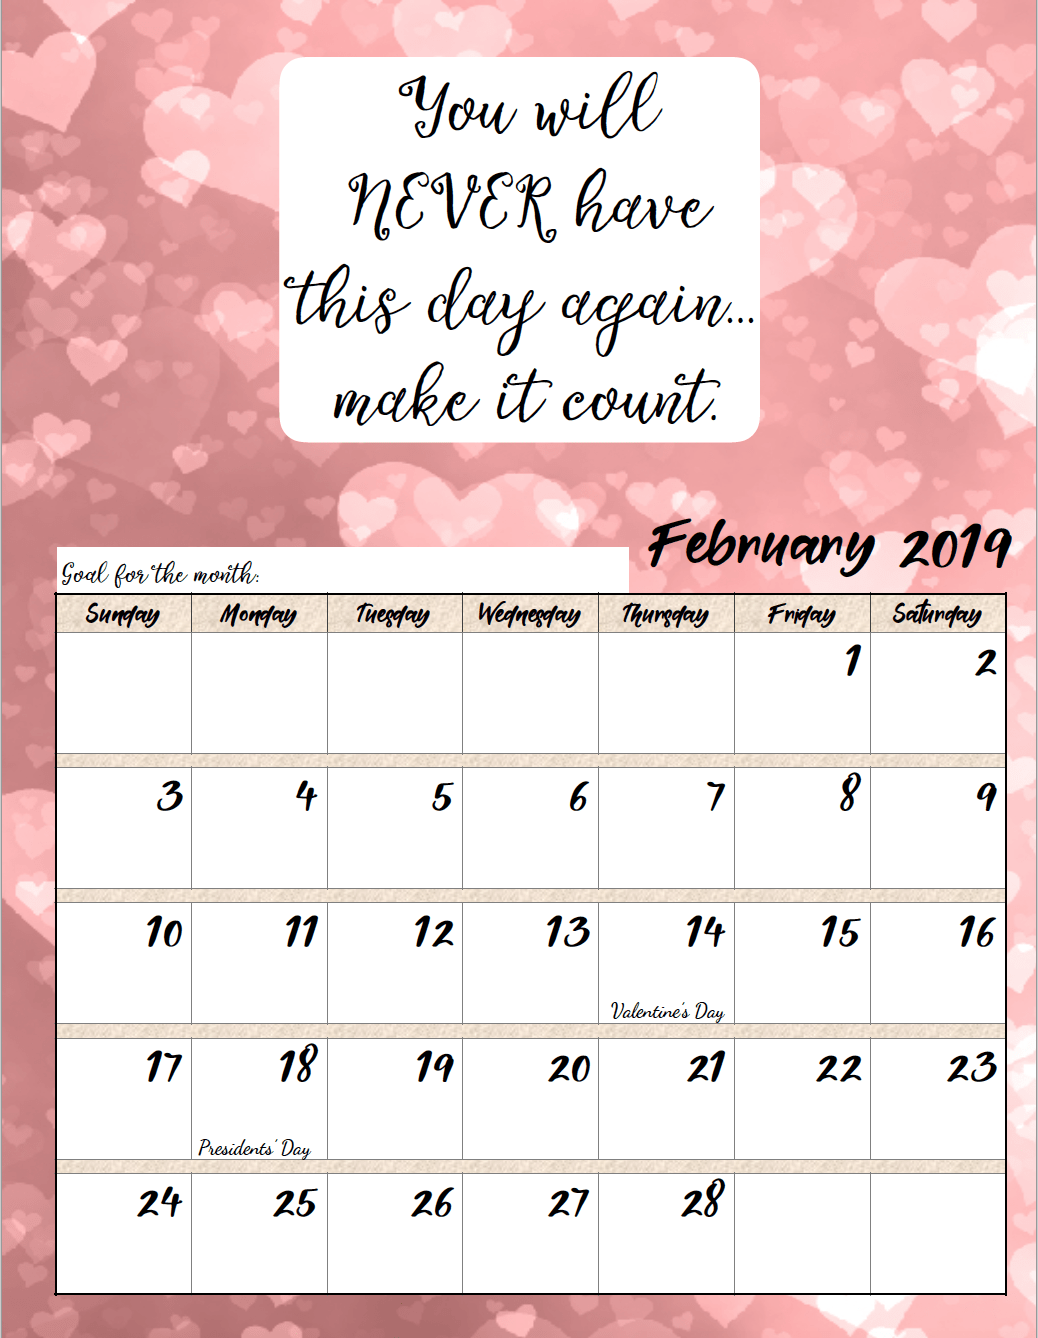 February. FREE Printable 2019 Monthly Motivational Calendars. Space for setting goals, different motivational quote each month, holidays marked. #free #freeprintable #printable #calendar #motivation